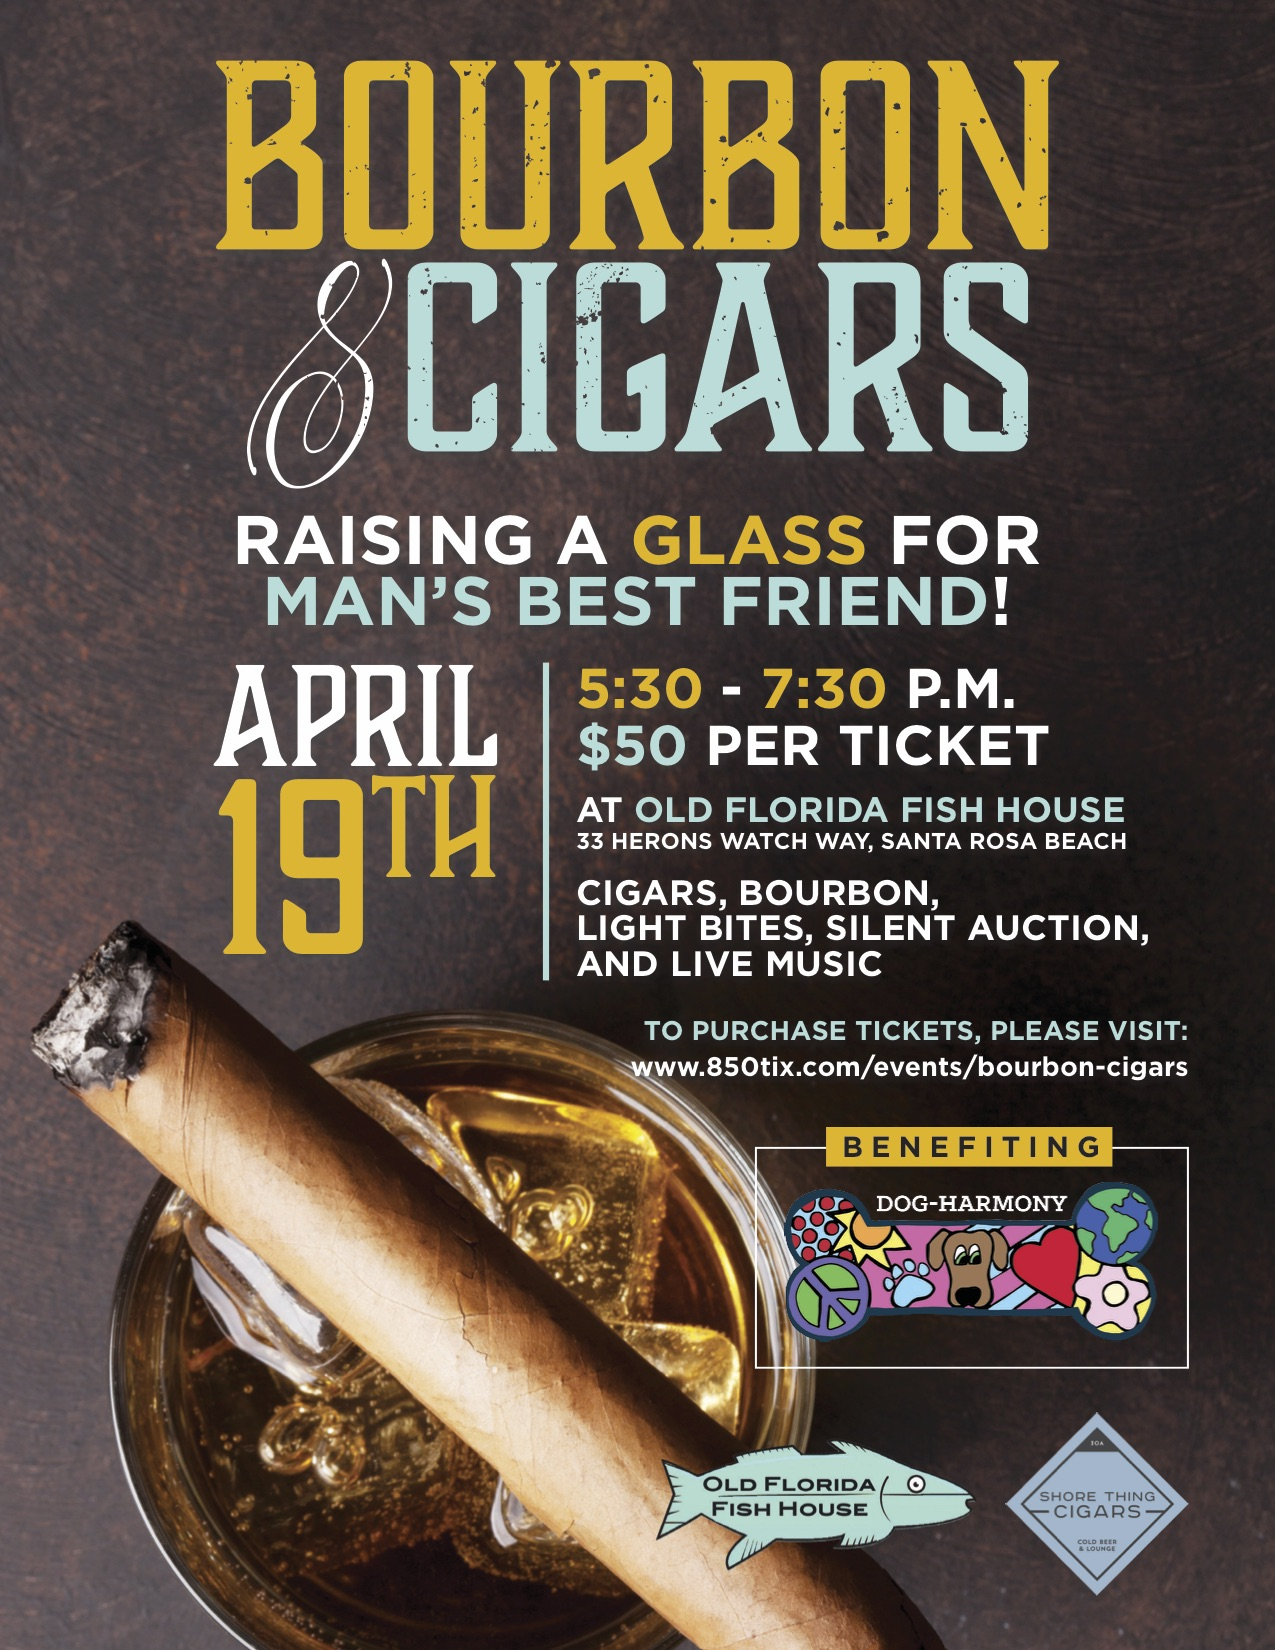 Bourbon & Cigars Event to Benefit Dog-Harmony